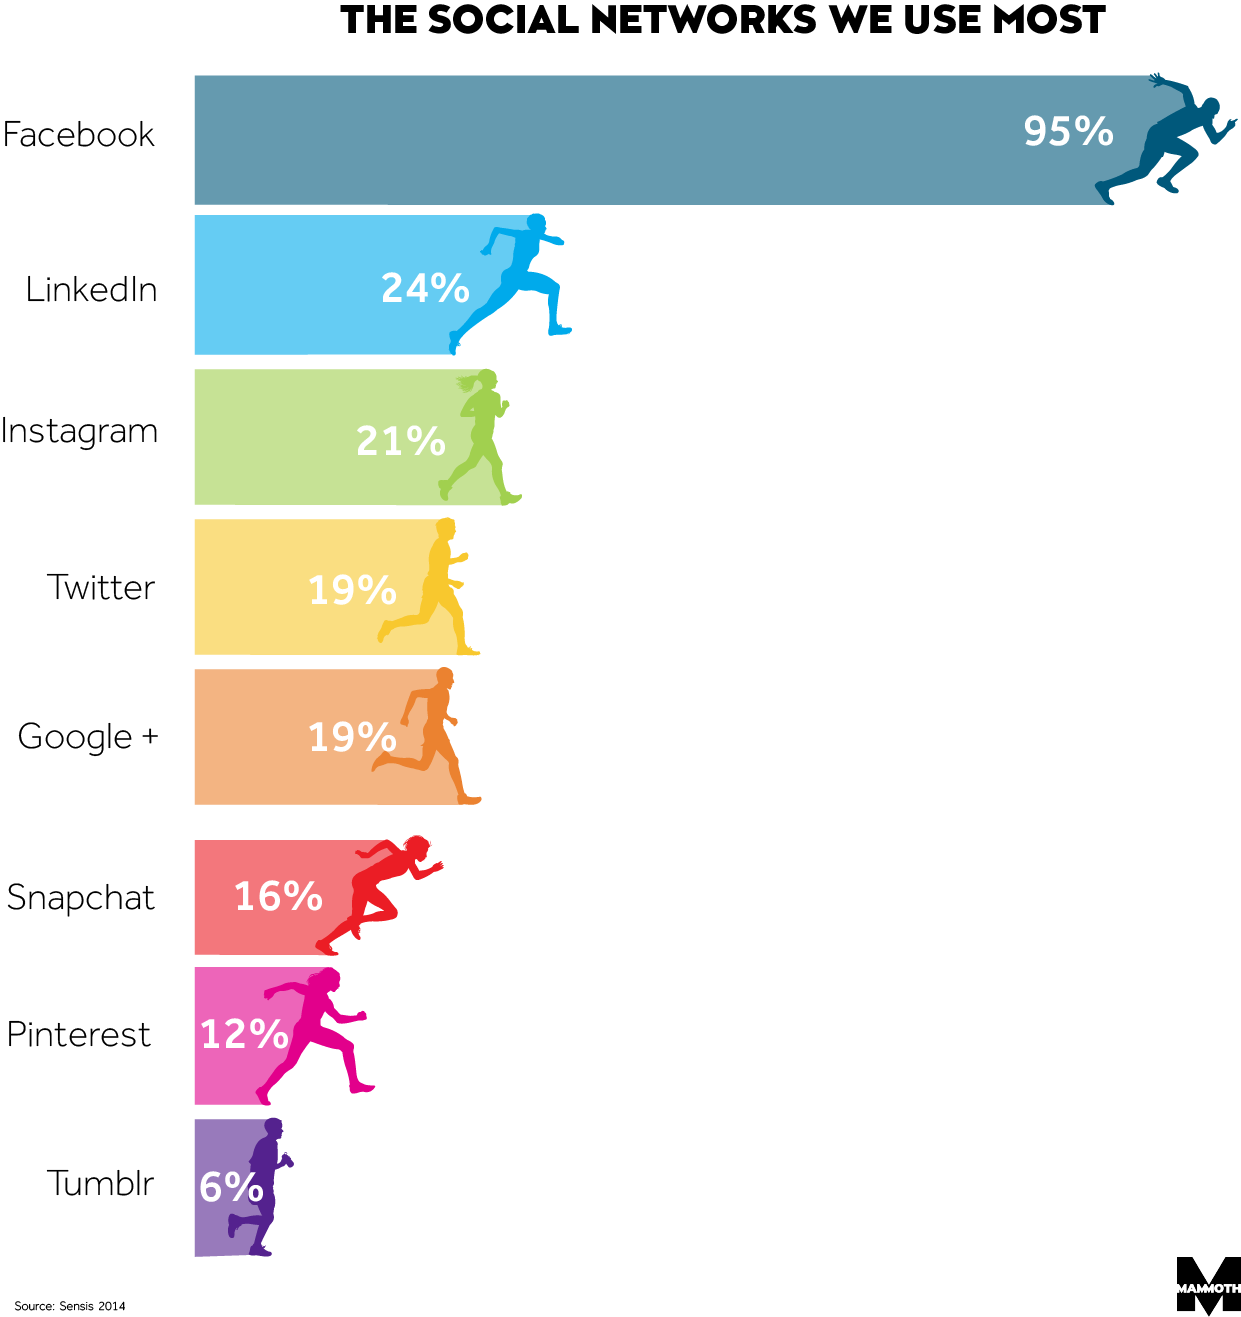 social media networks we use the most image